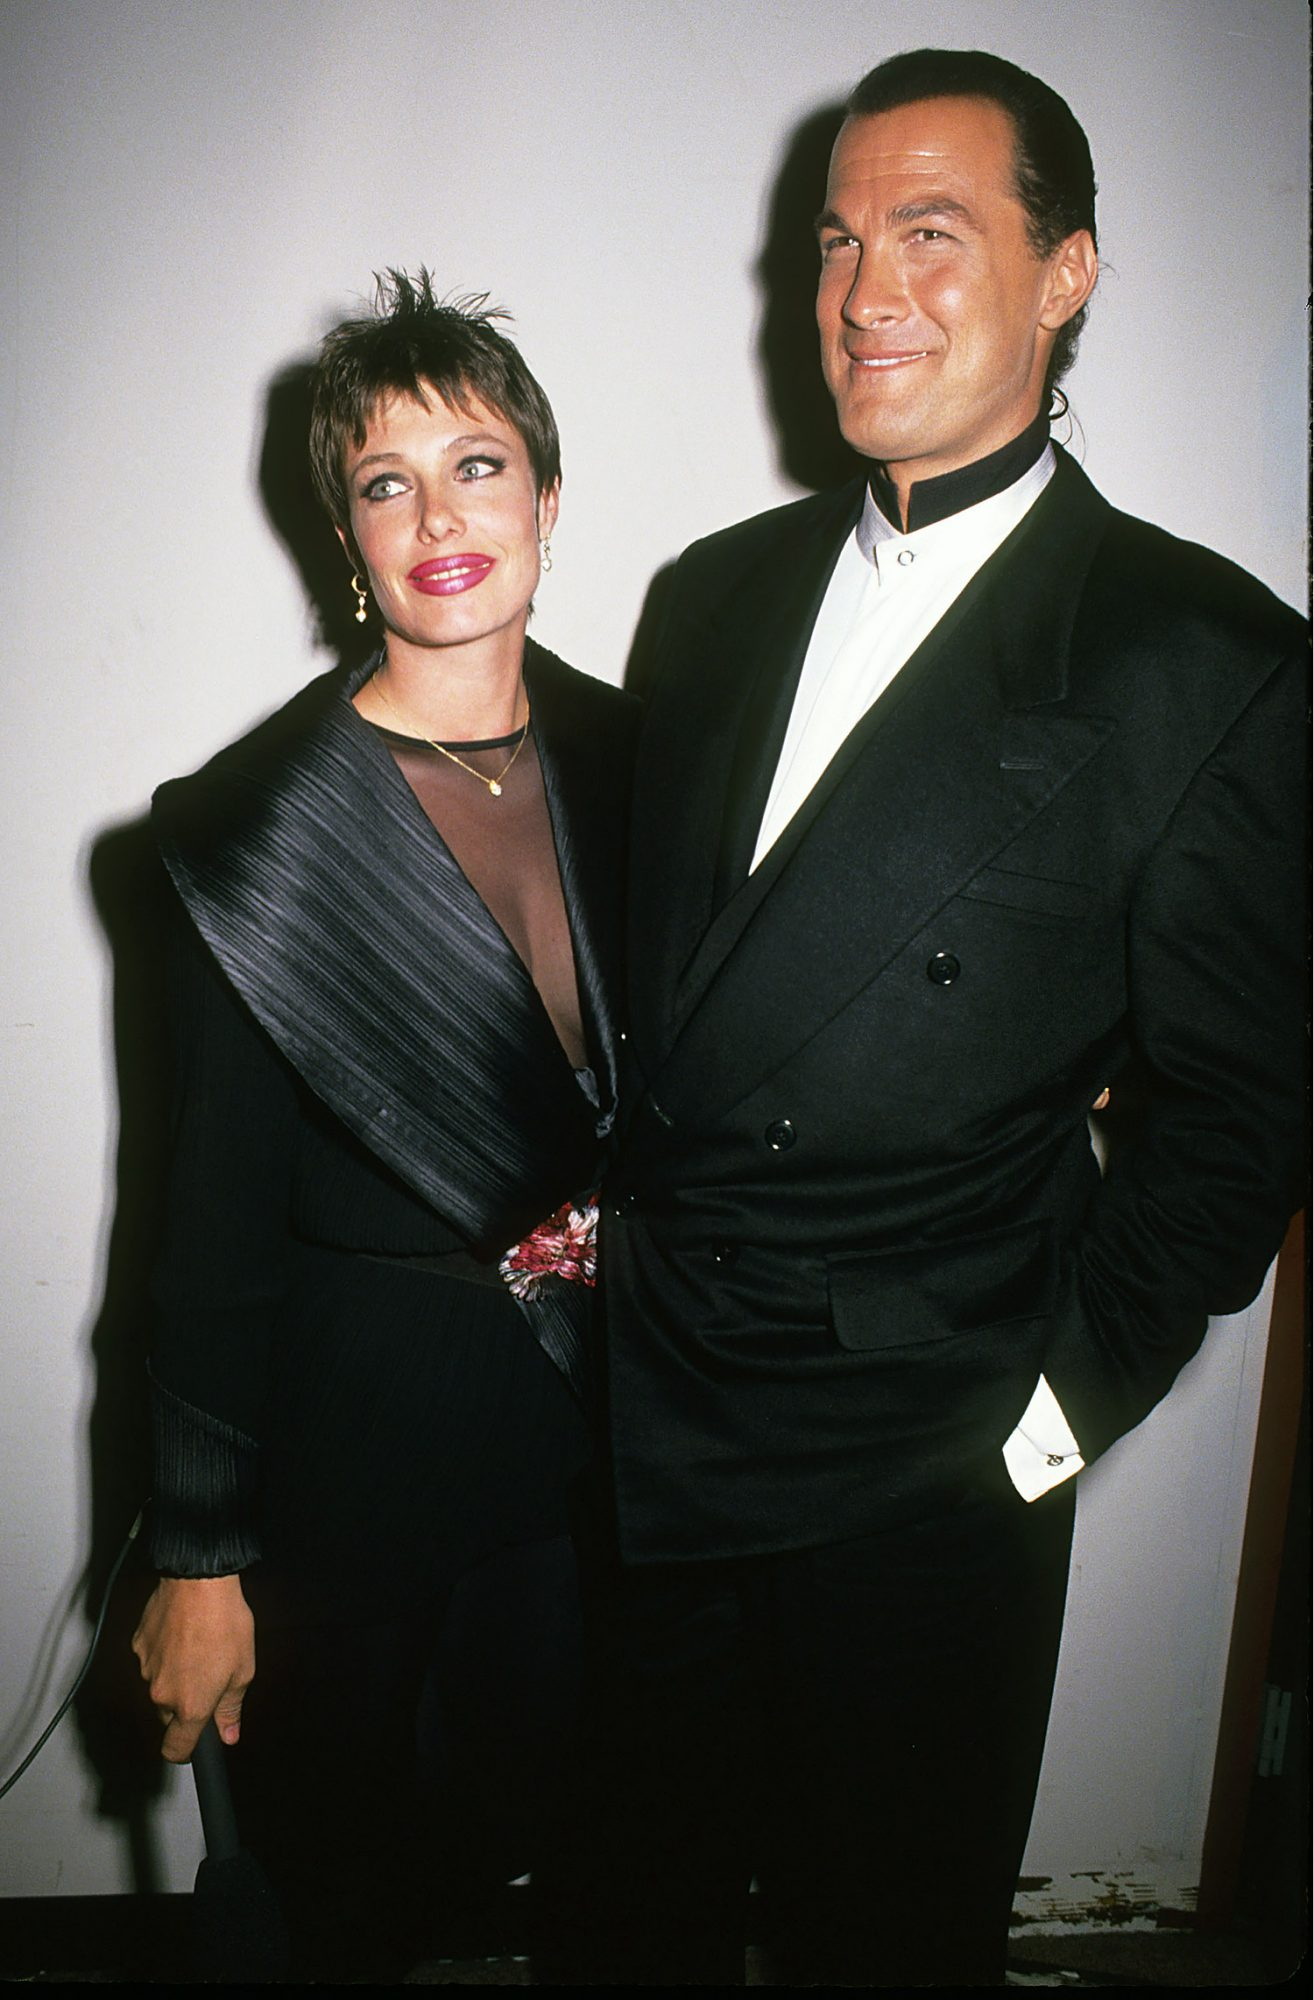 """Steven Seagal and Kelly LeBrock at film premiere of """"Out for Justice' - April 14th 1991"""